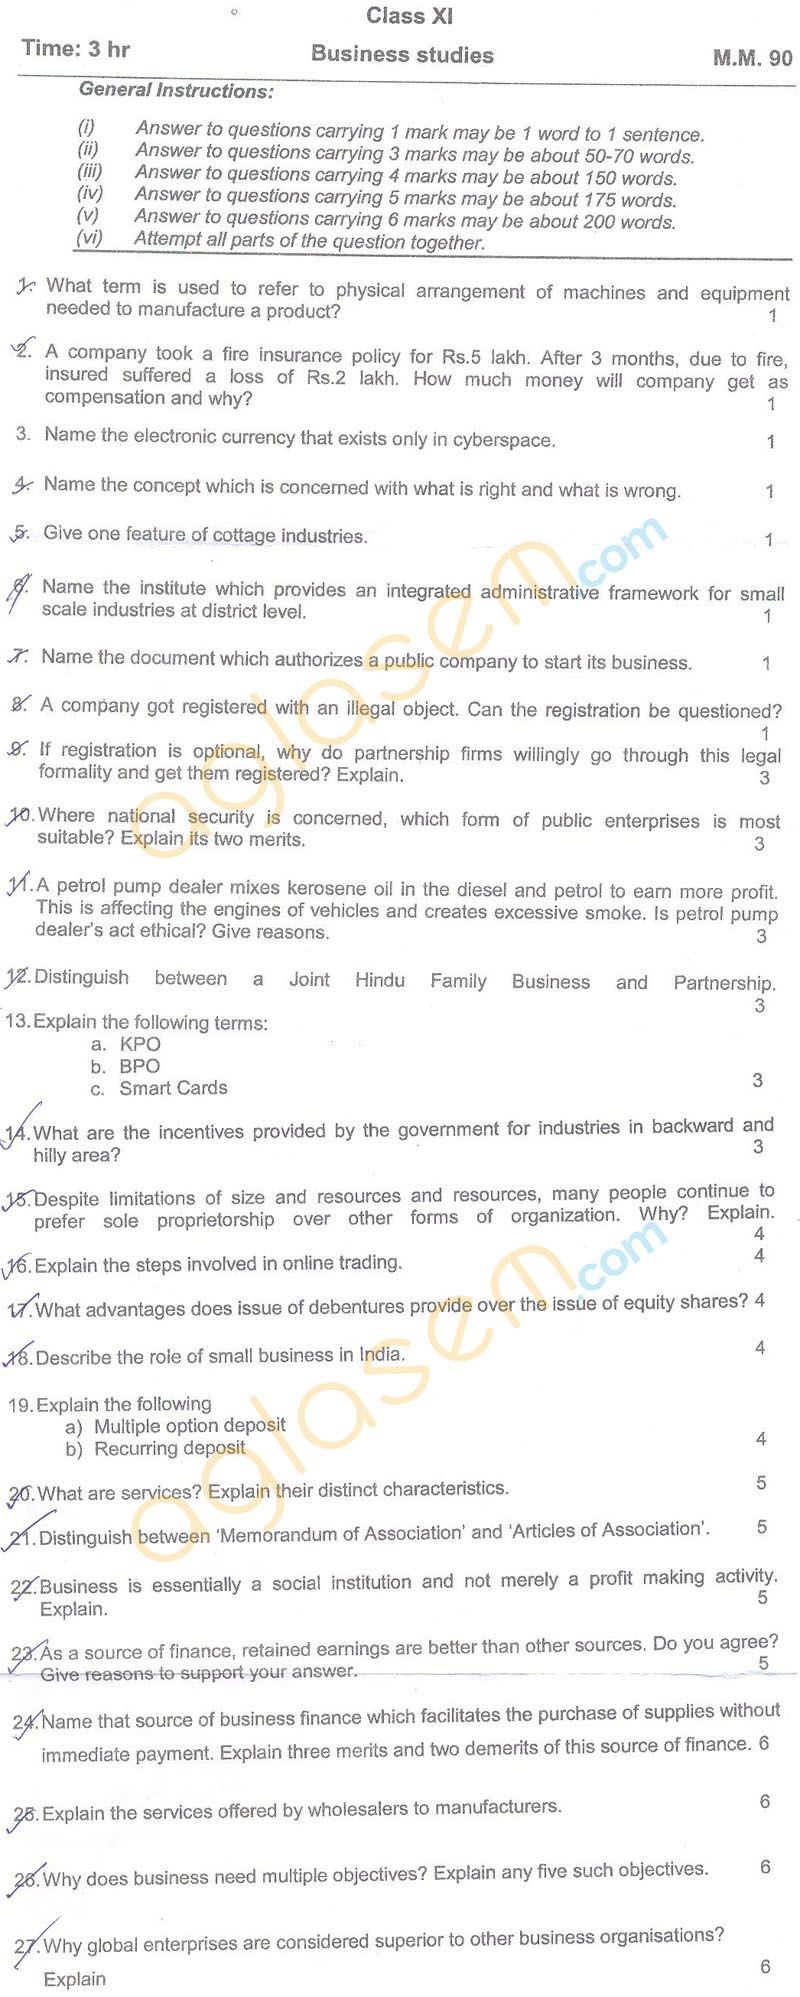 cbse class 11 half yearly question papers  u2013 business